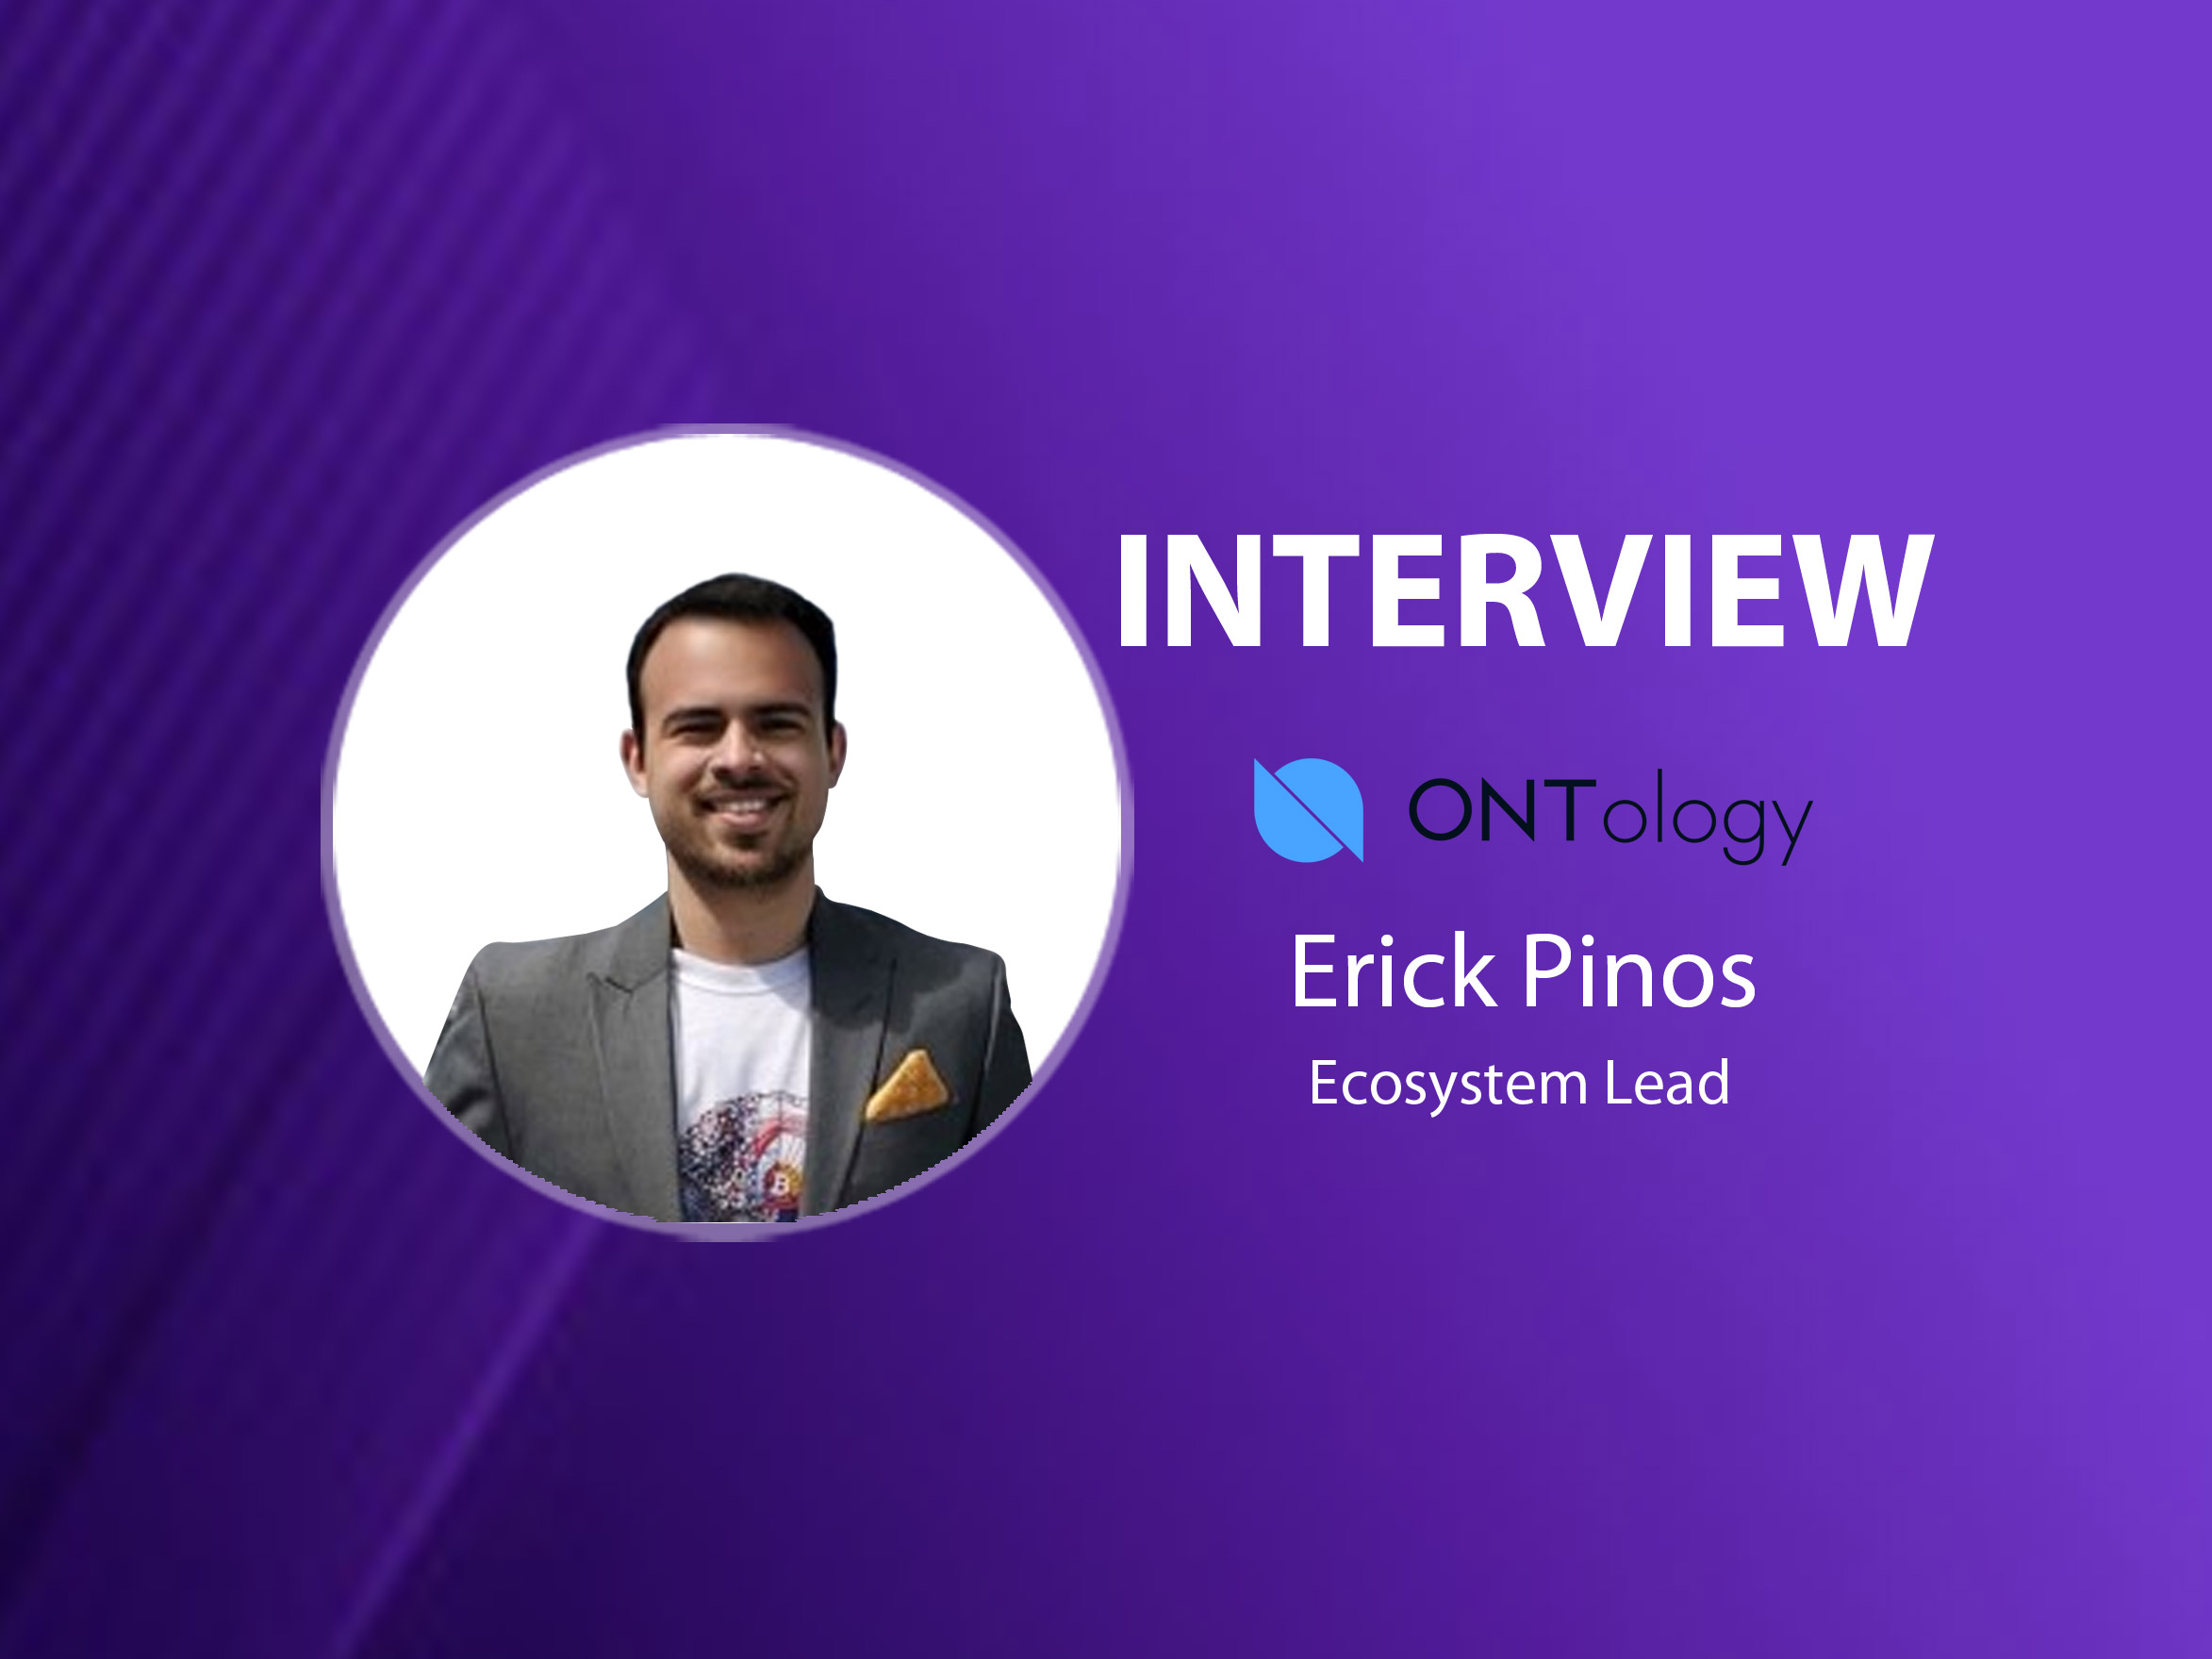 GlobalFintechSeries Interview with Erick Pinos, Ecosystem Lead at Ontology